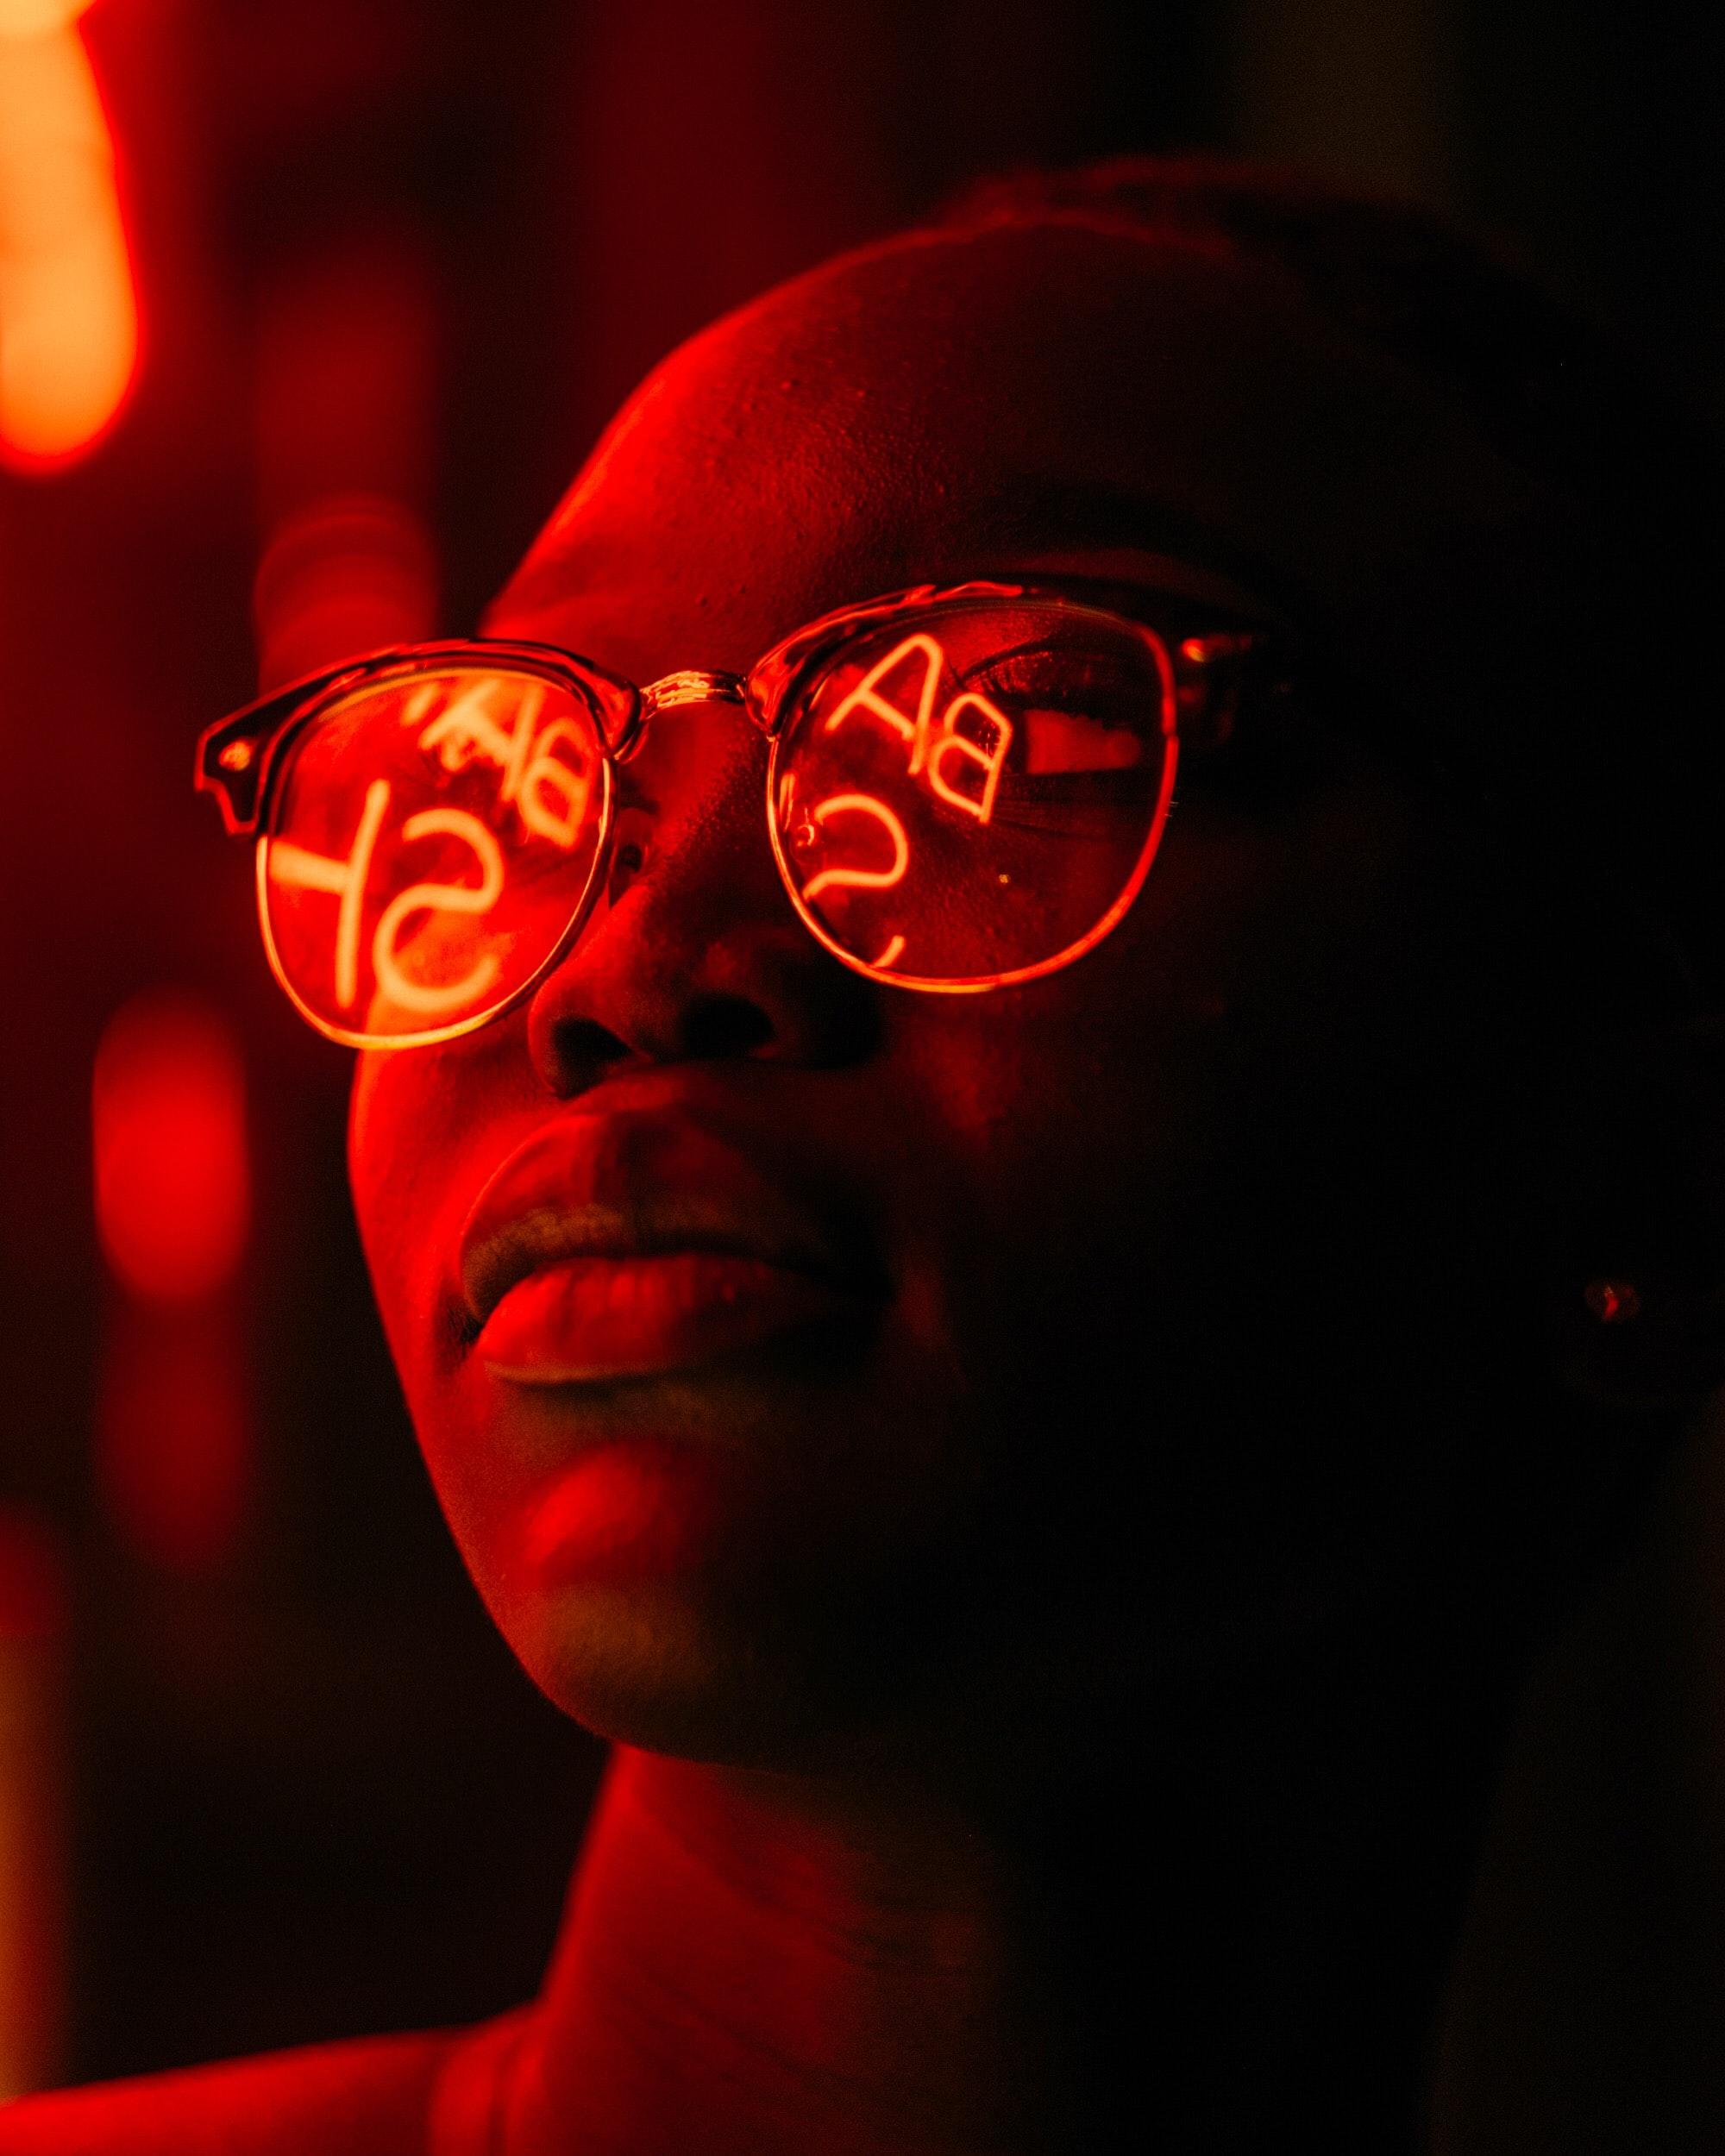 woman wearing eyeglasses with red LED signage reflection